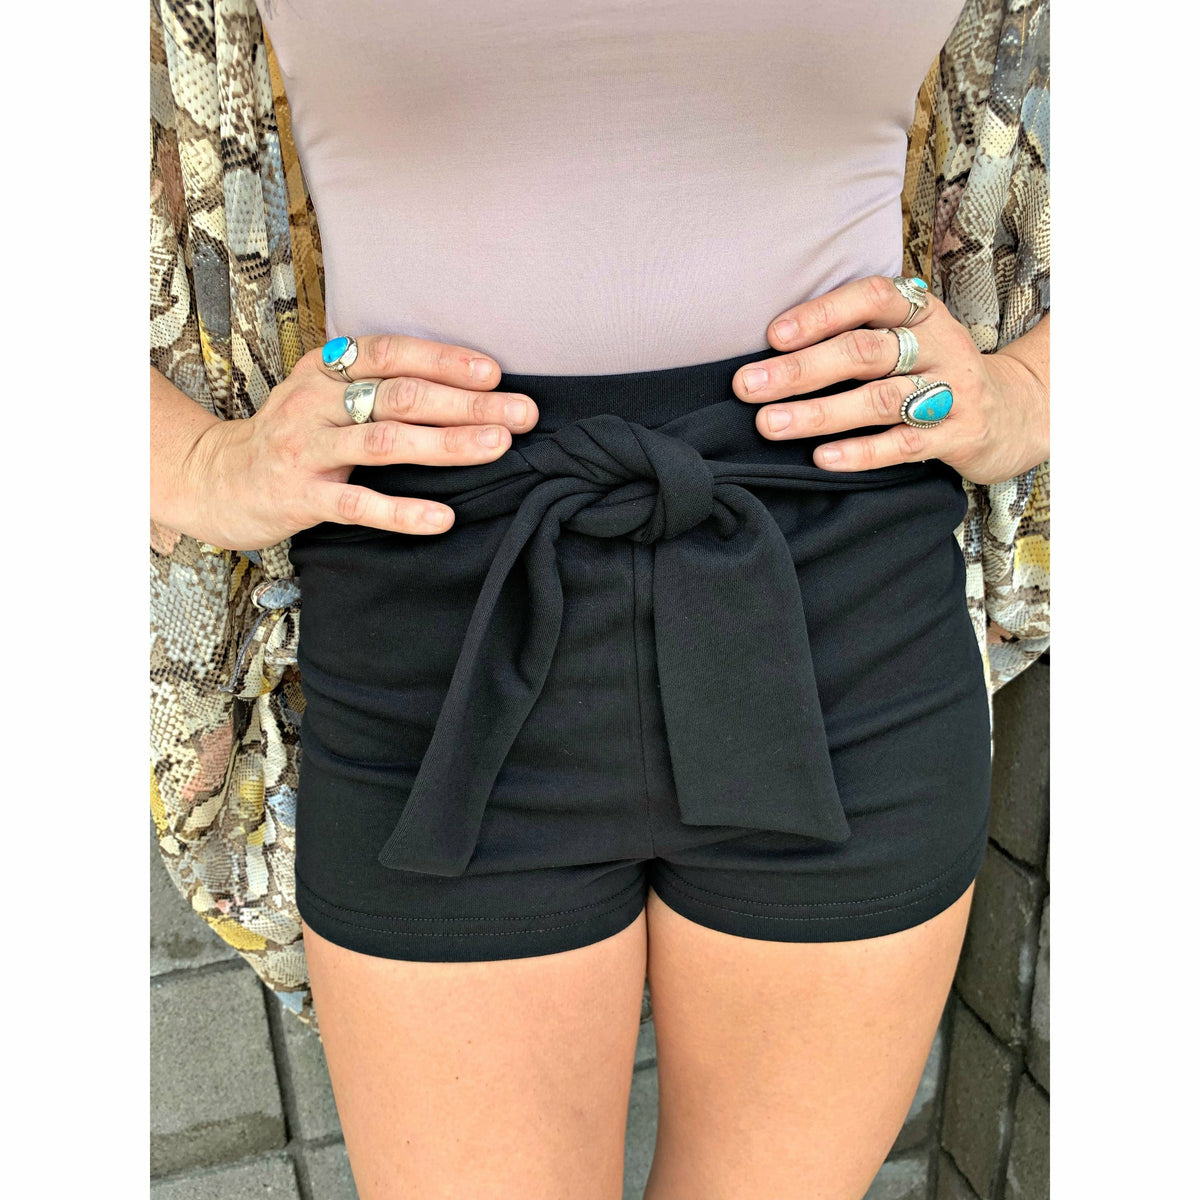 Comfy Soft Tie Shorts ( 3 colors)